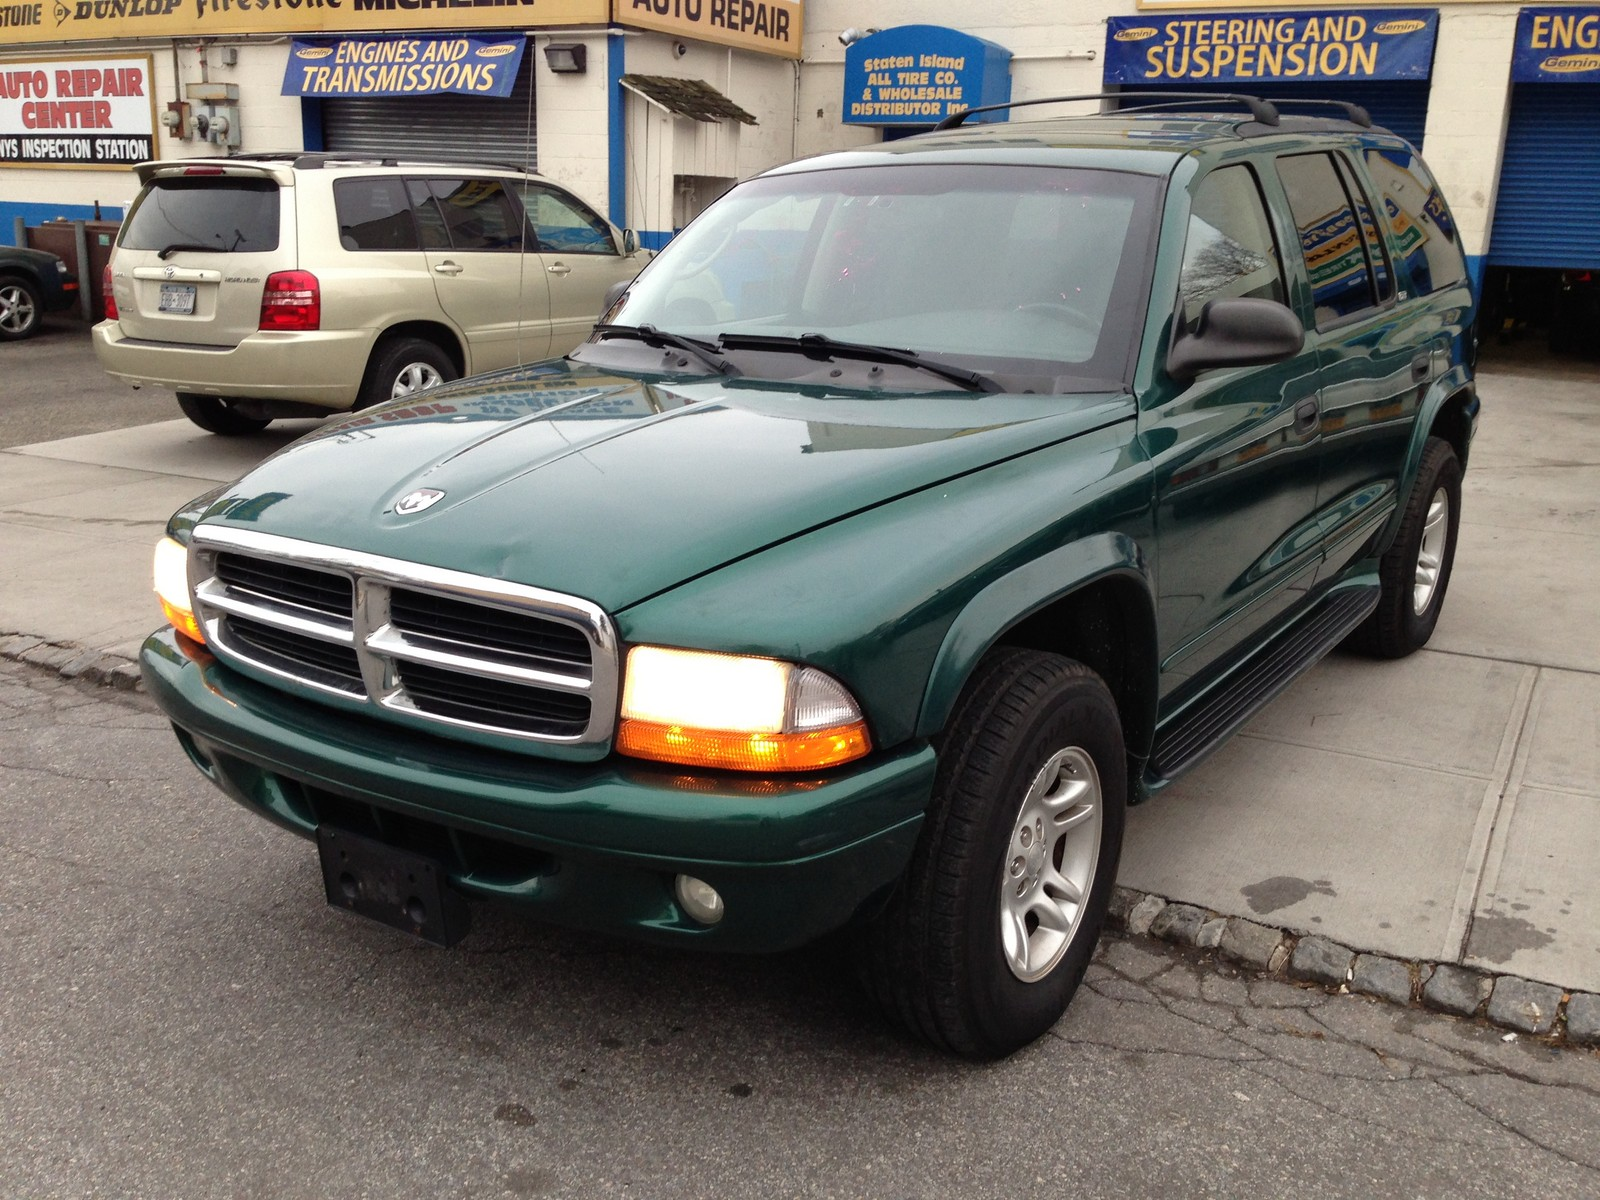 offers used car for sale 2002 dodge durango sport utility 4wd 1. Black Bedroom Furniture Sets. Home Design Ideas